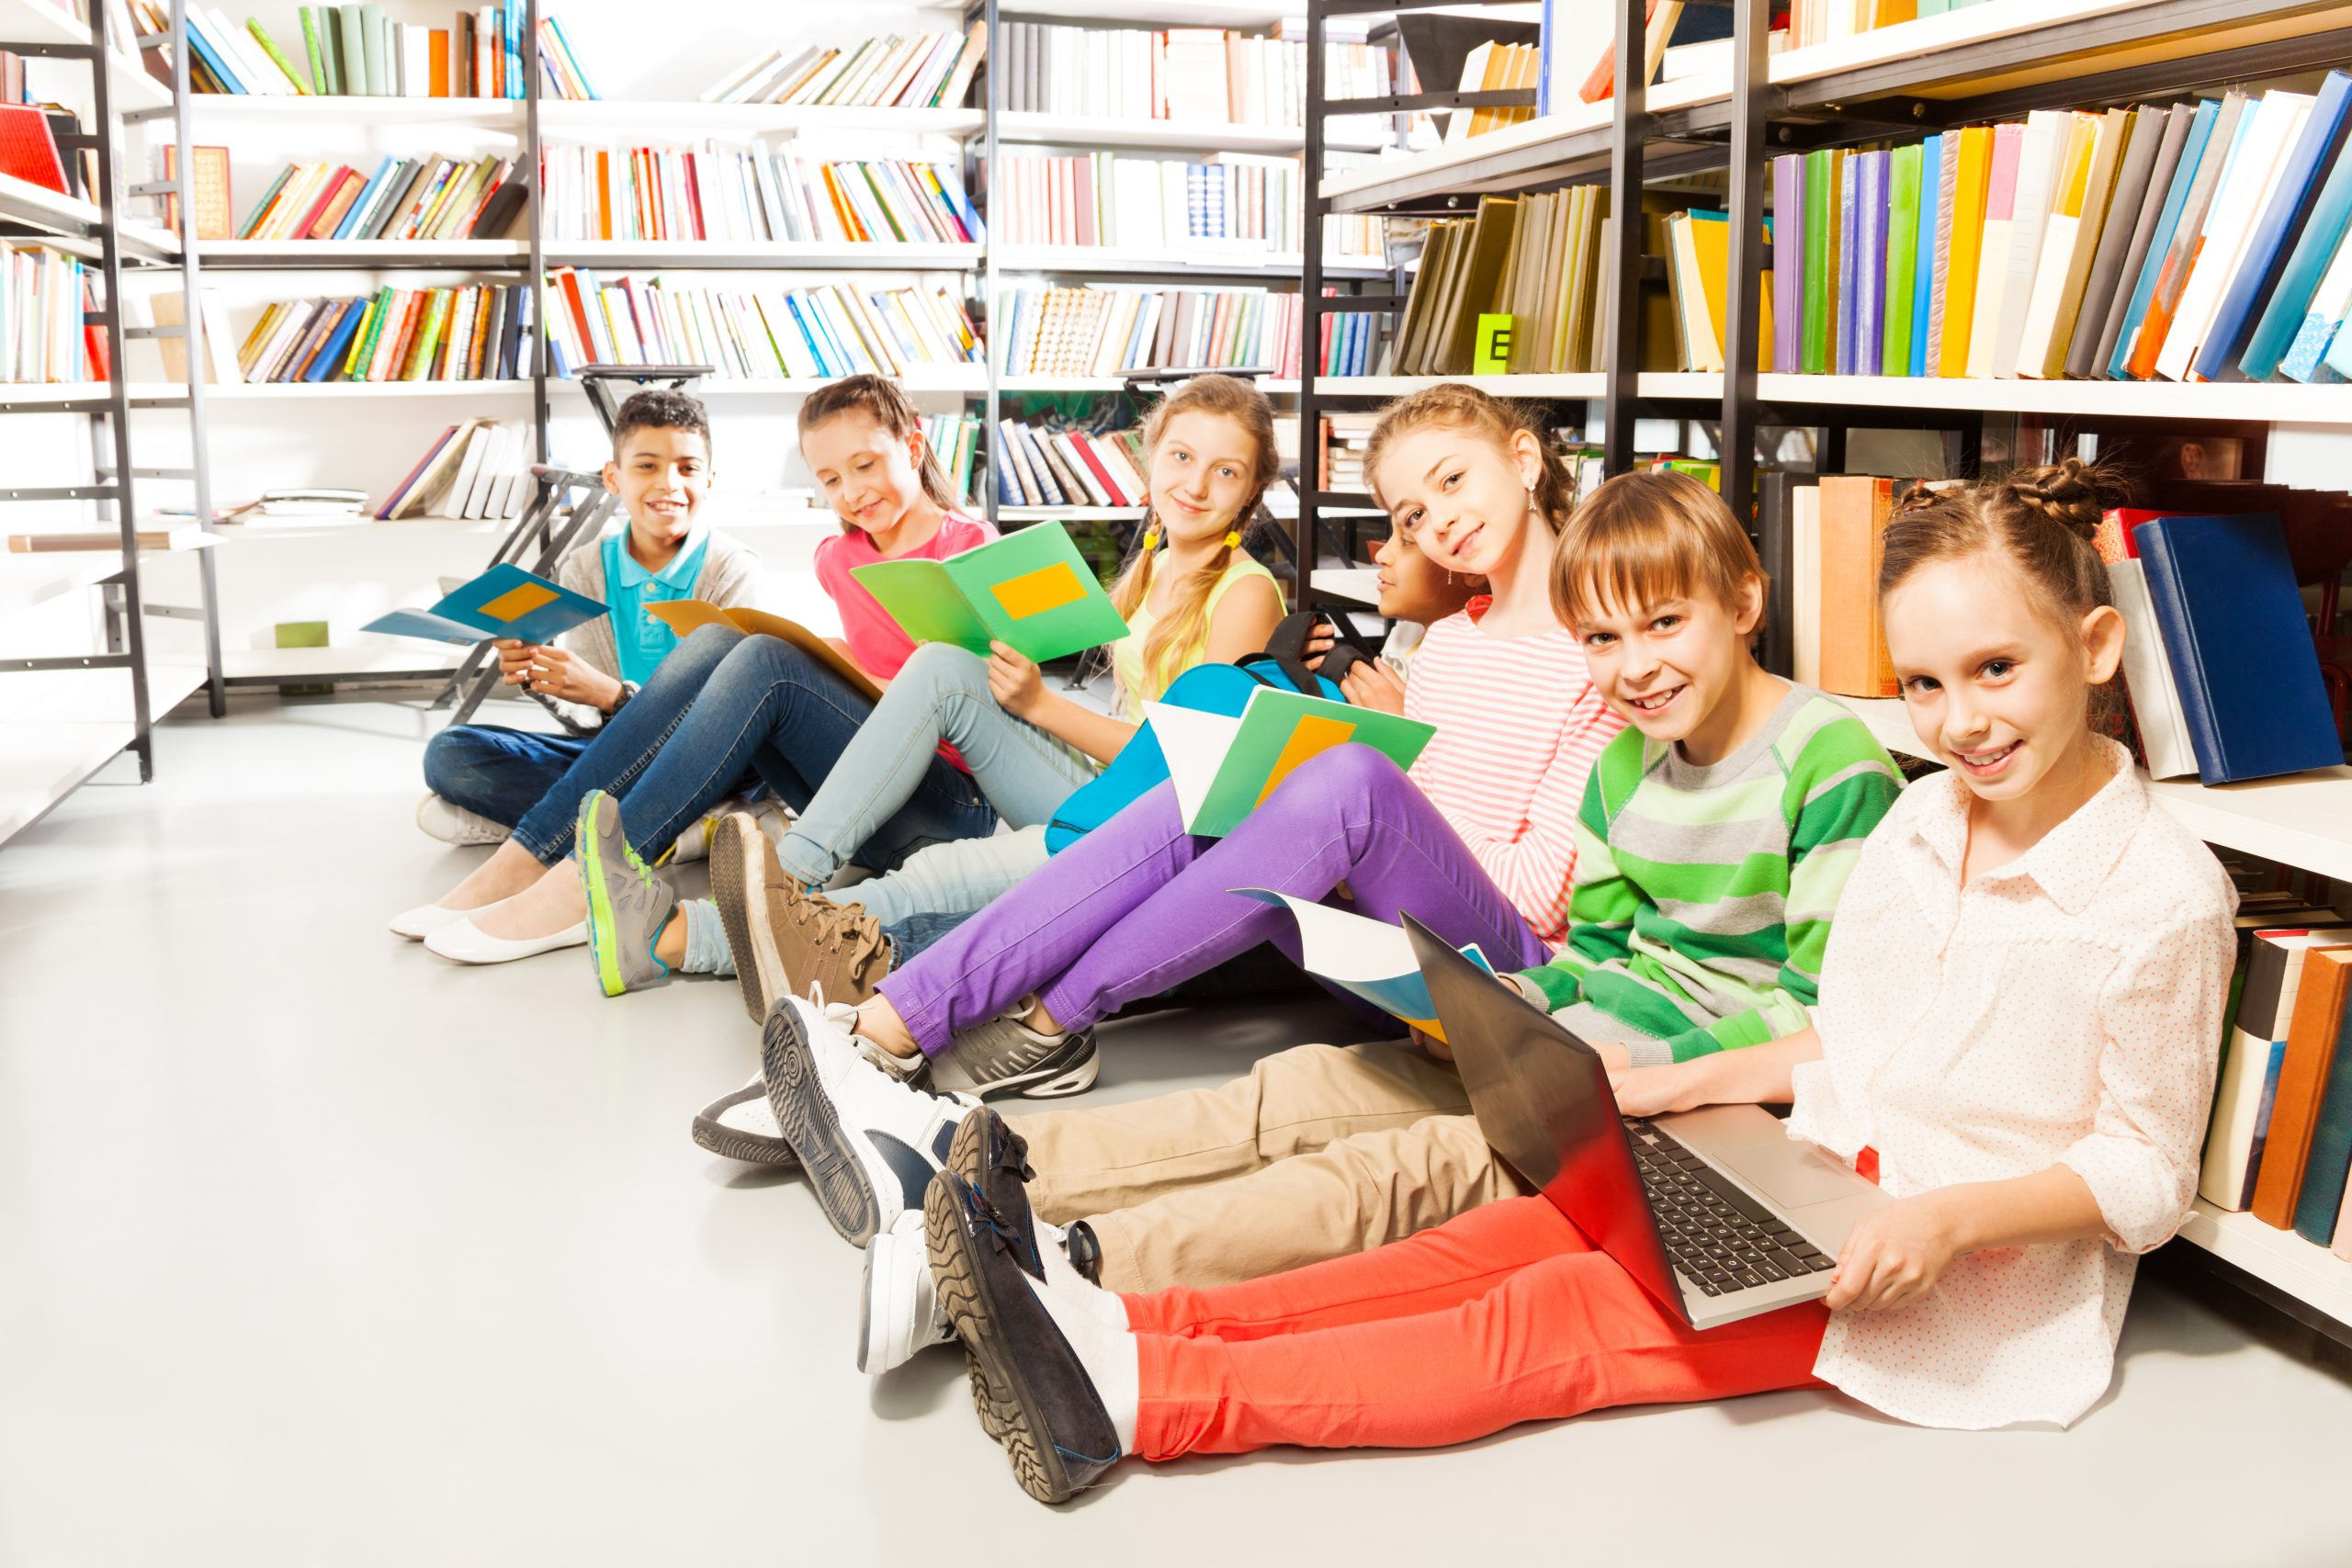 Six smiling children sitting in a row on floor in the library near bookshelf and looking straight